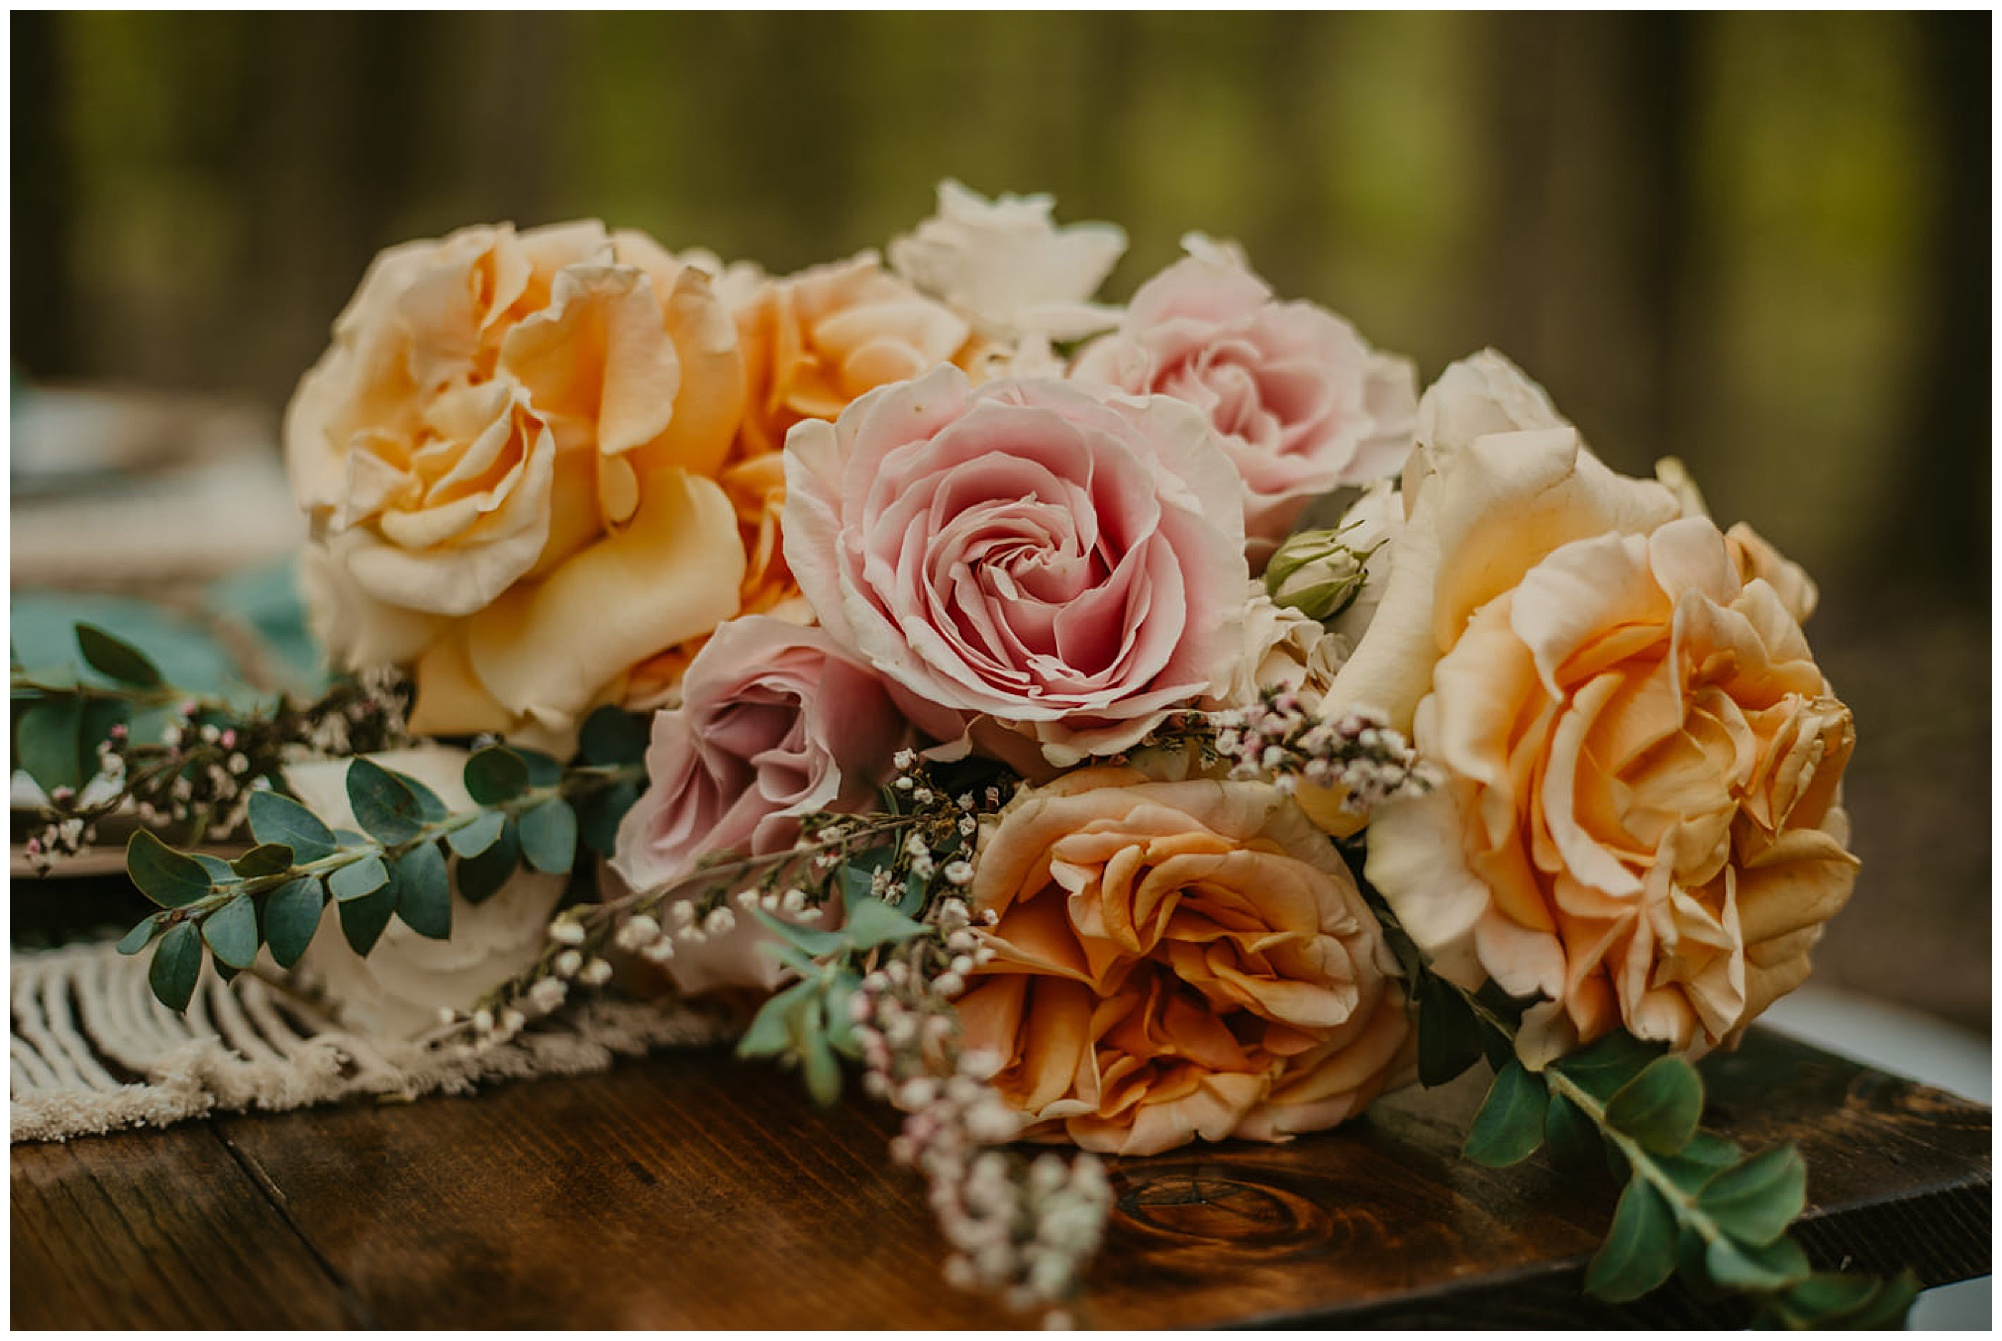 pastel flower bouquet with light peach, pink, and greenery   eco friendly style wedding at prancing deer farm now featured on my eastern shore wedding blog